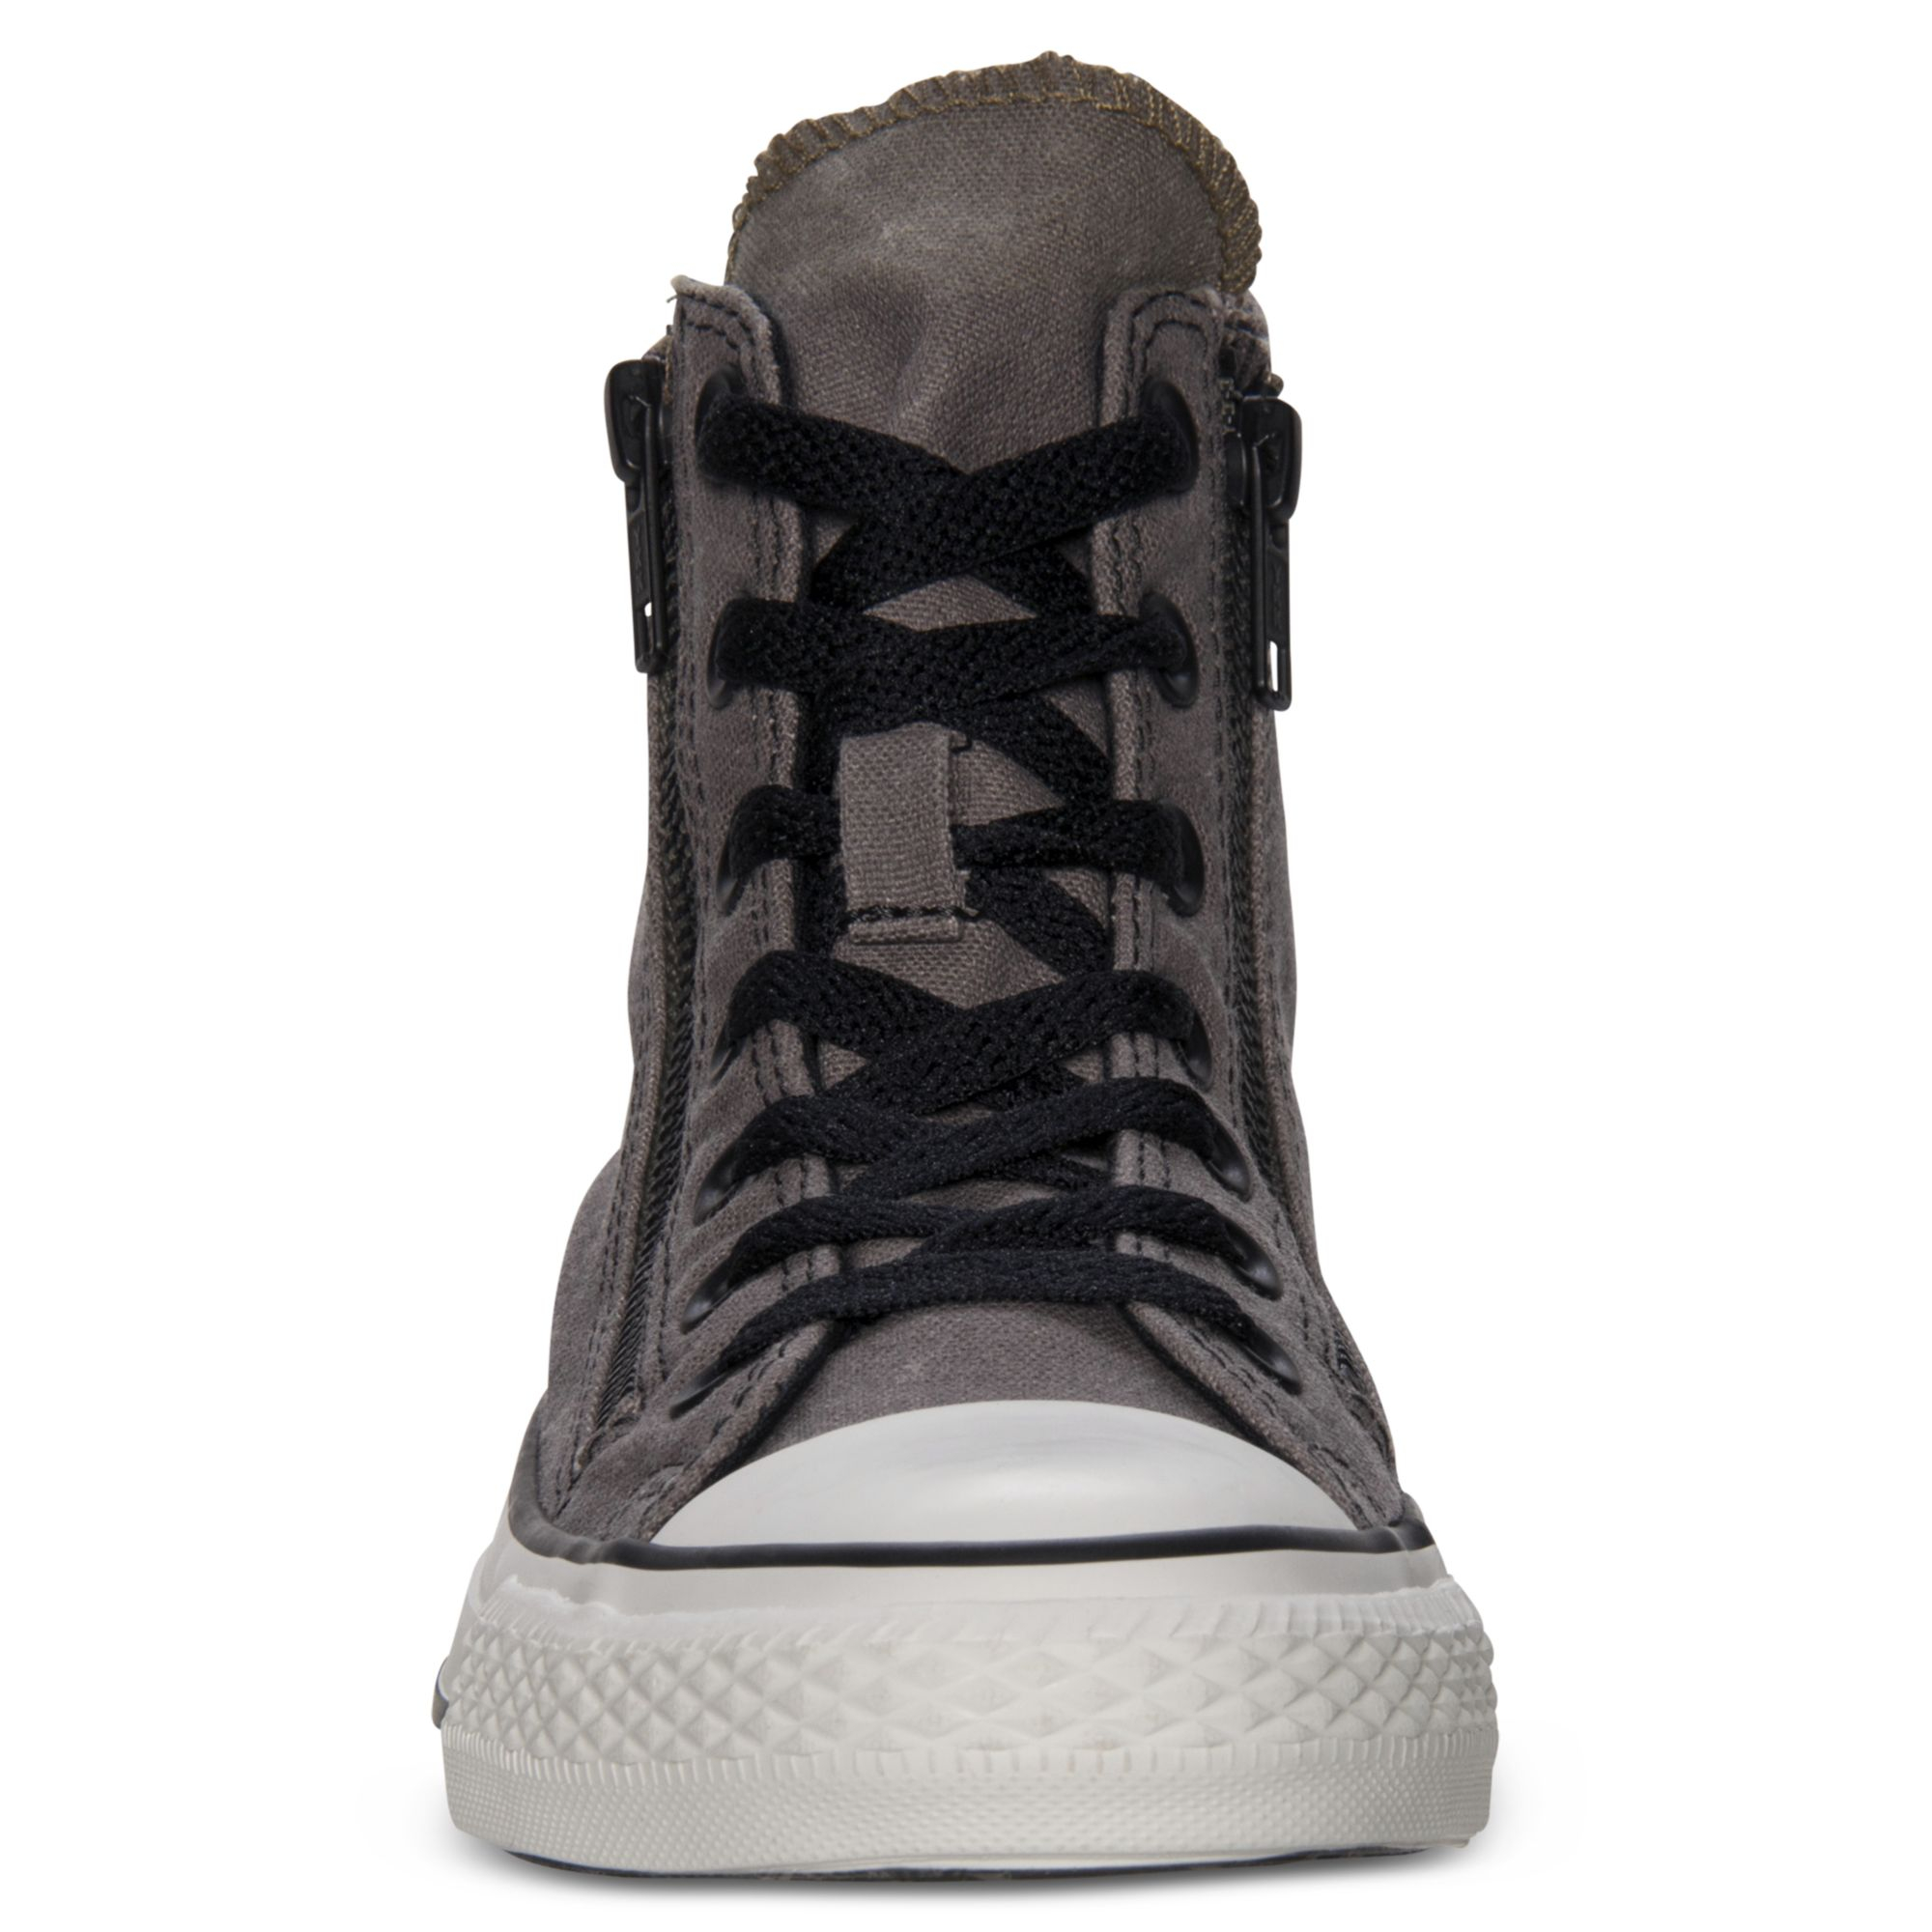 Gray Converse All For Taylor Zip Casual Sneakers Double Chuck Star Men Hi 54qjcAR3LS